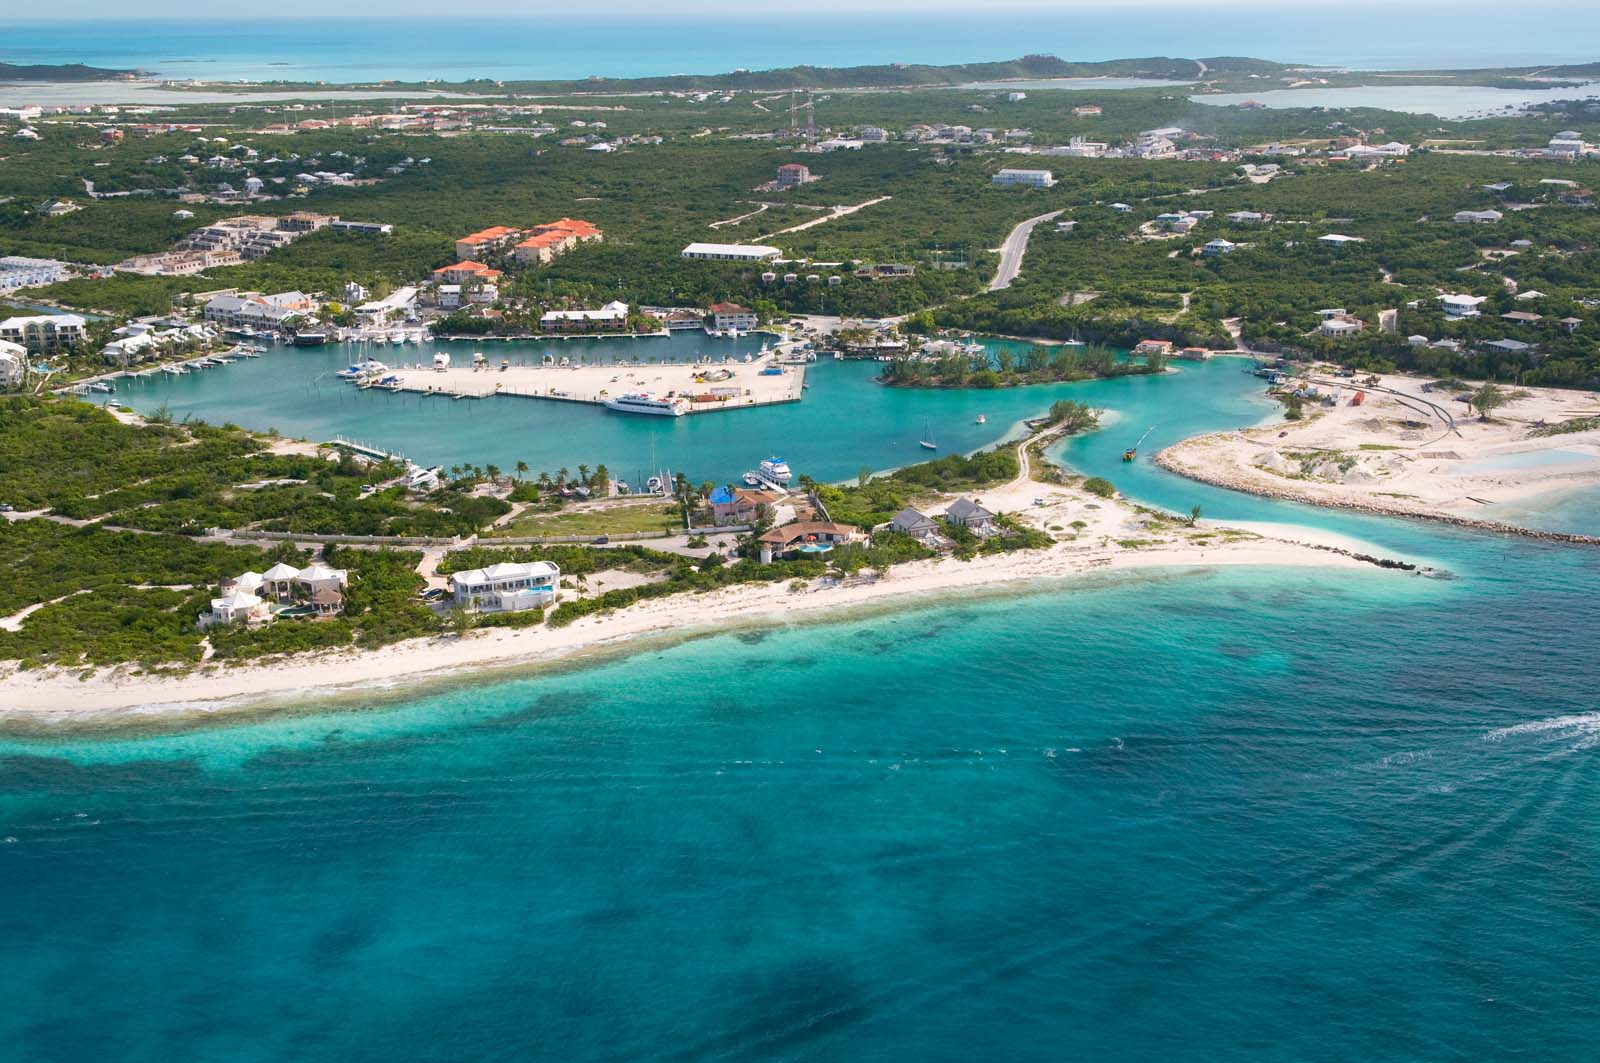 Smiths Reef at Turtle Cove Providenciales Turks and Caicos